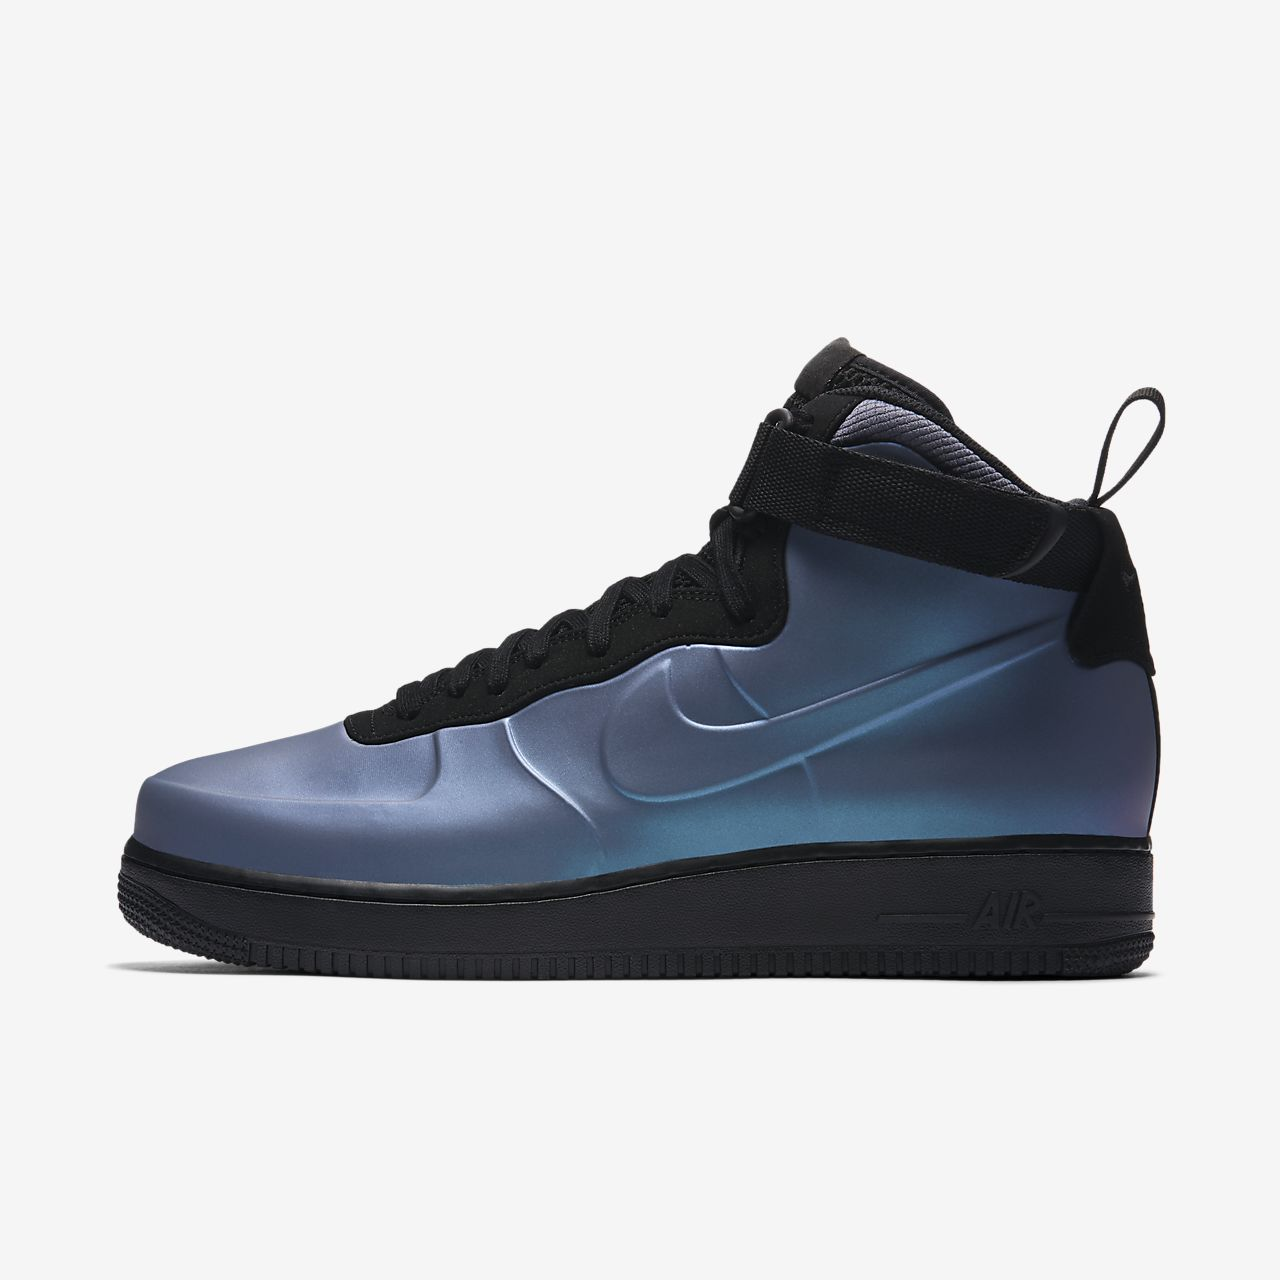 on sale 0cc62 79e80 Chaussure Nike  Nike Sneakers Online at Best Prices  Backall